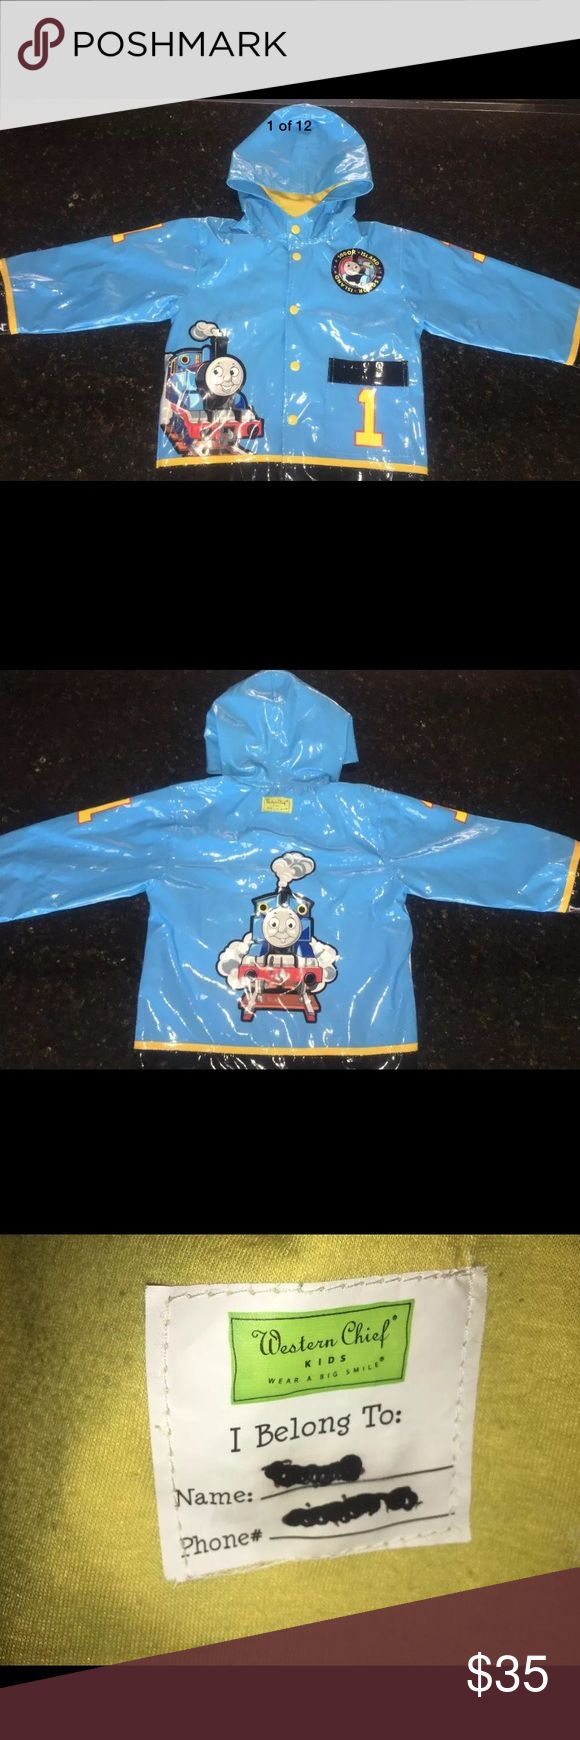 Thomas the Tank Engine Train Sz 4/5 Thomas the Train Engine Excellent condition rain jacket by Western Chief.   Sz 4/5 unisex  Full snap up front  Hooded  One pocket on outer front.  Outer rain shell and inner lining  Inner name label you just need to put a sticker label over .  Extremely well made. Western Chief Jackets & Coats Raincoats